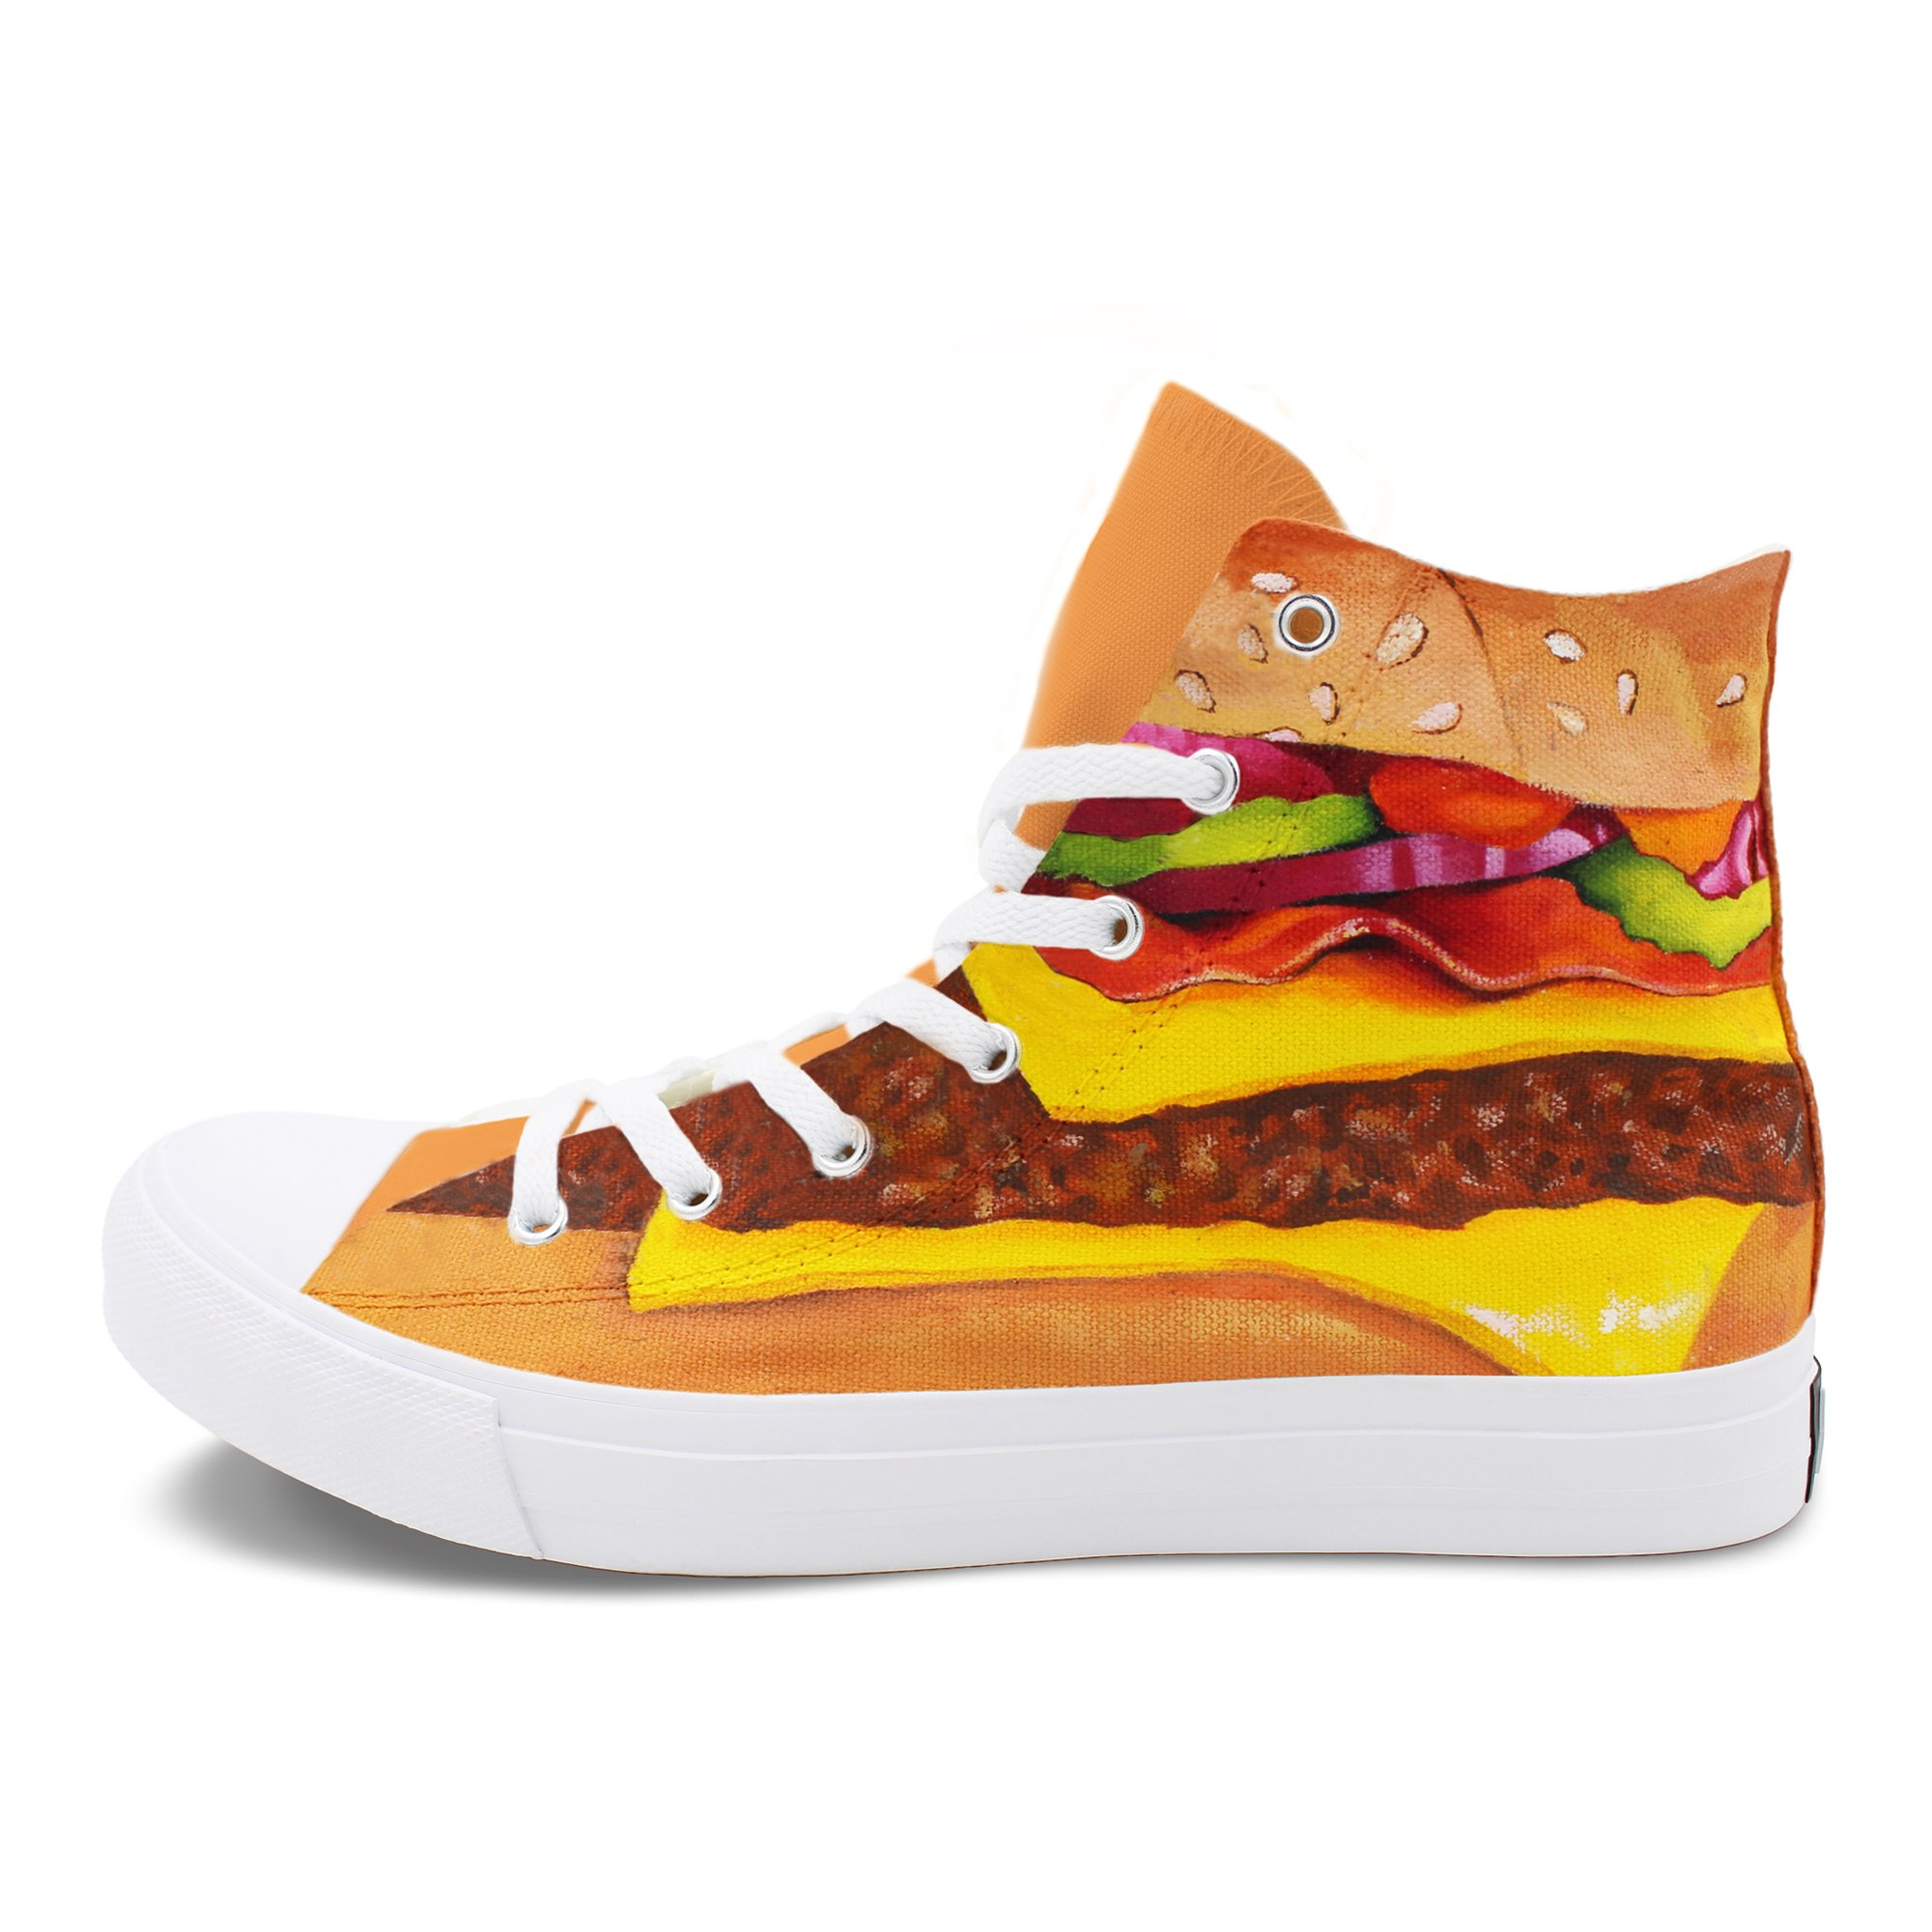 Wen Fire Hand Painted Shoes Hamburger Western Fast-food Unisex Canvas Sneakers